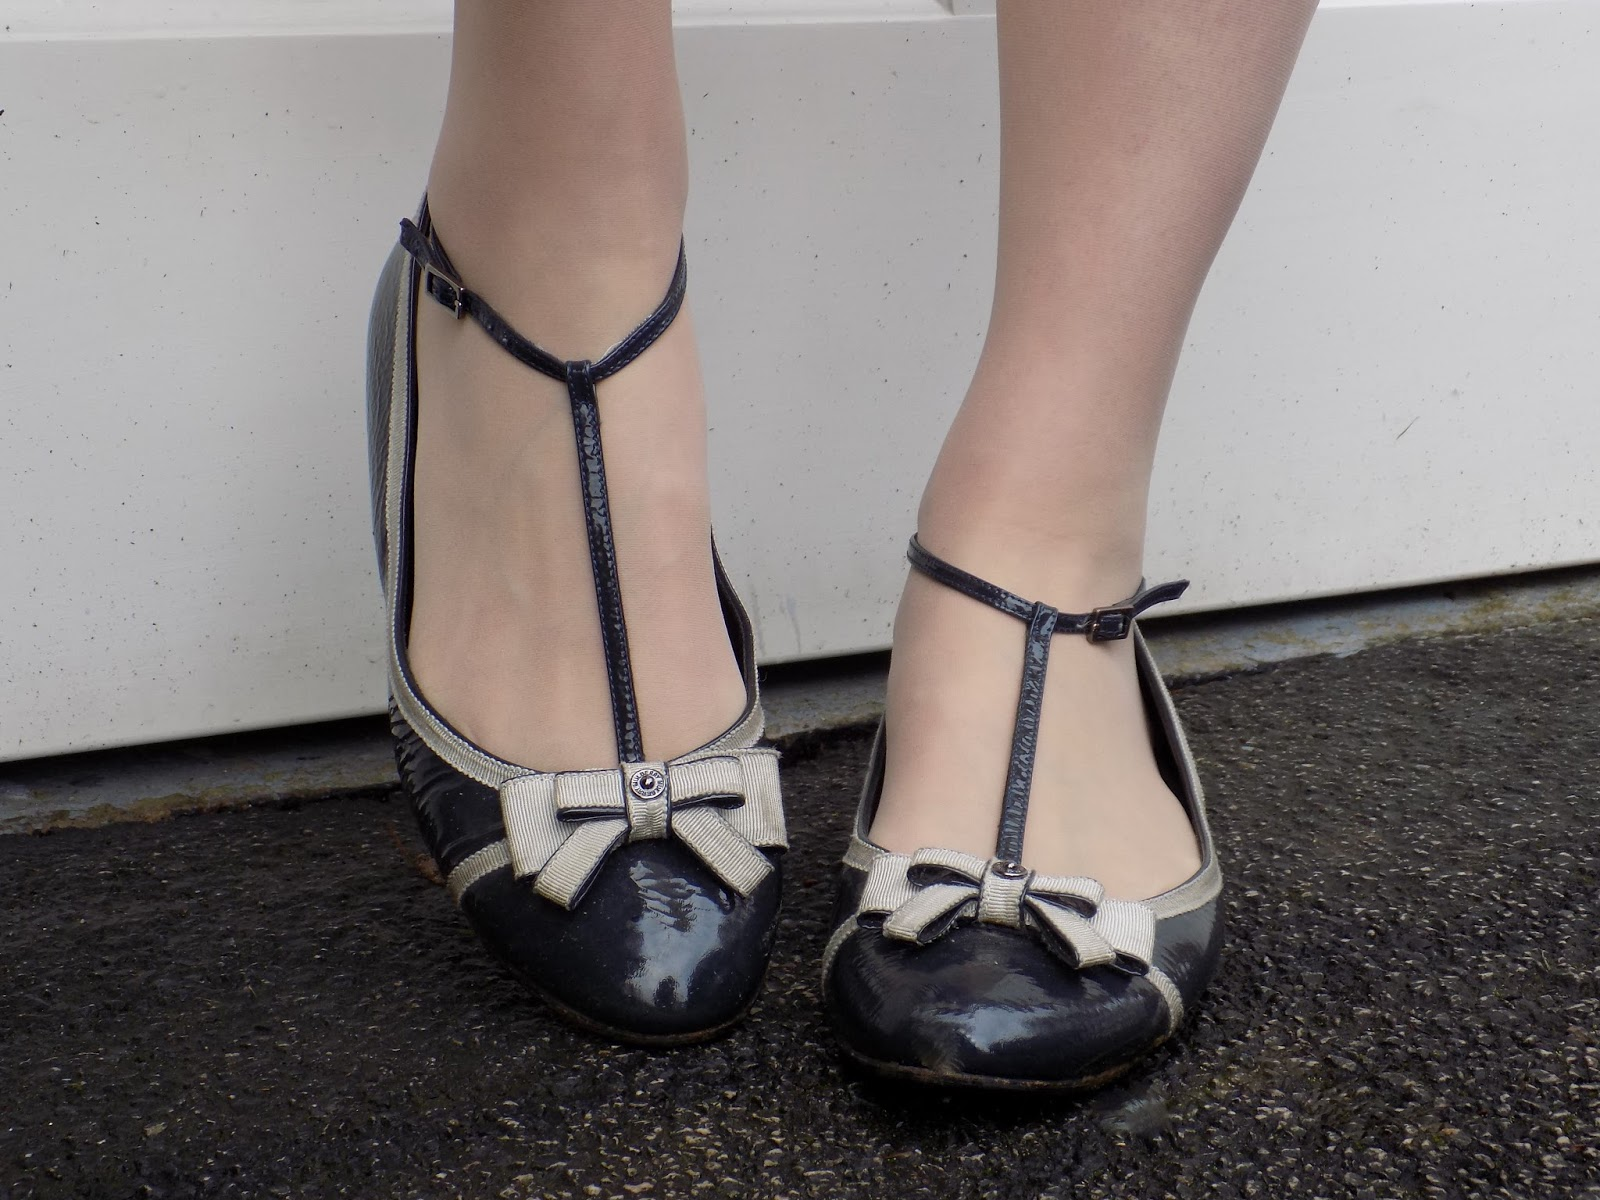 Mulberry spongy patent grosgrain bow Mary Jane flat shoes